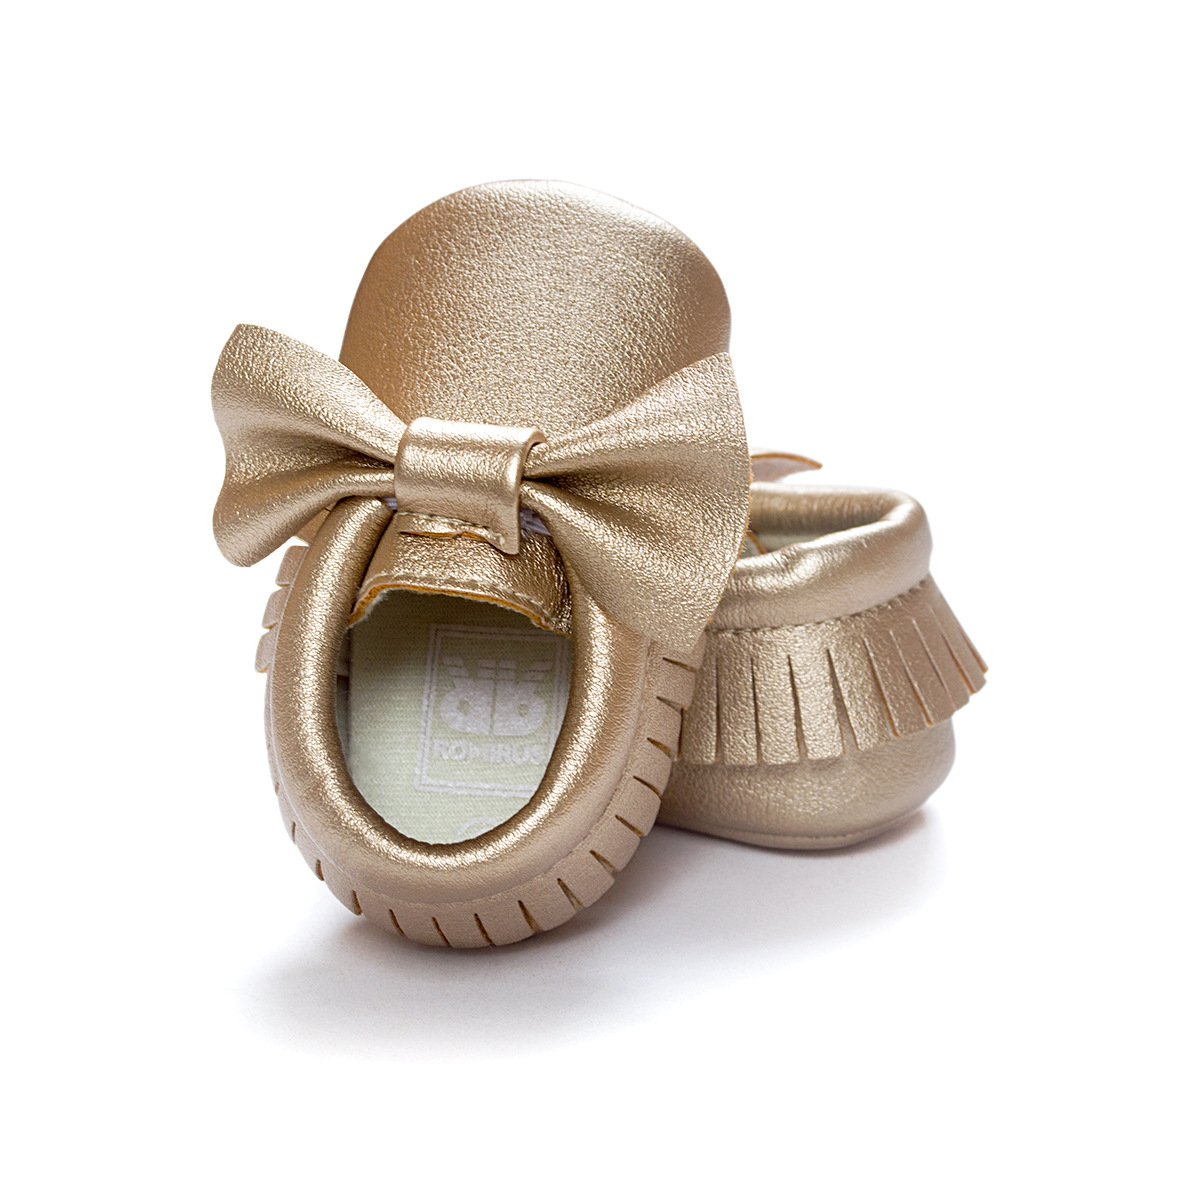 C&H Baby boy girl soft cute tassel bow tassels baby cot shoes baby shoes (11cm(0-6months), 5107 golden) by C&H (Image #4)